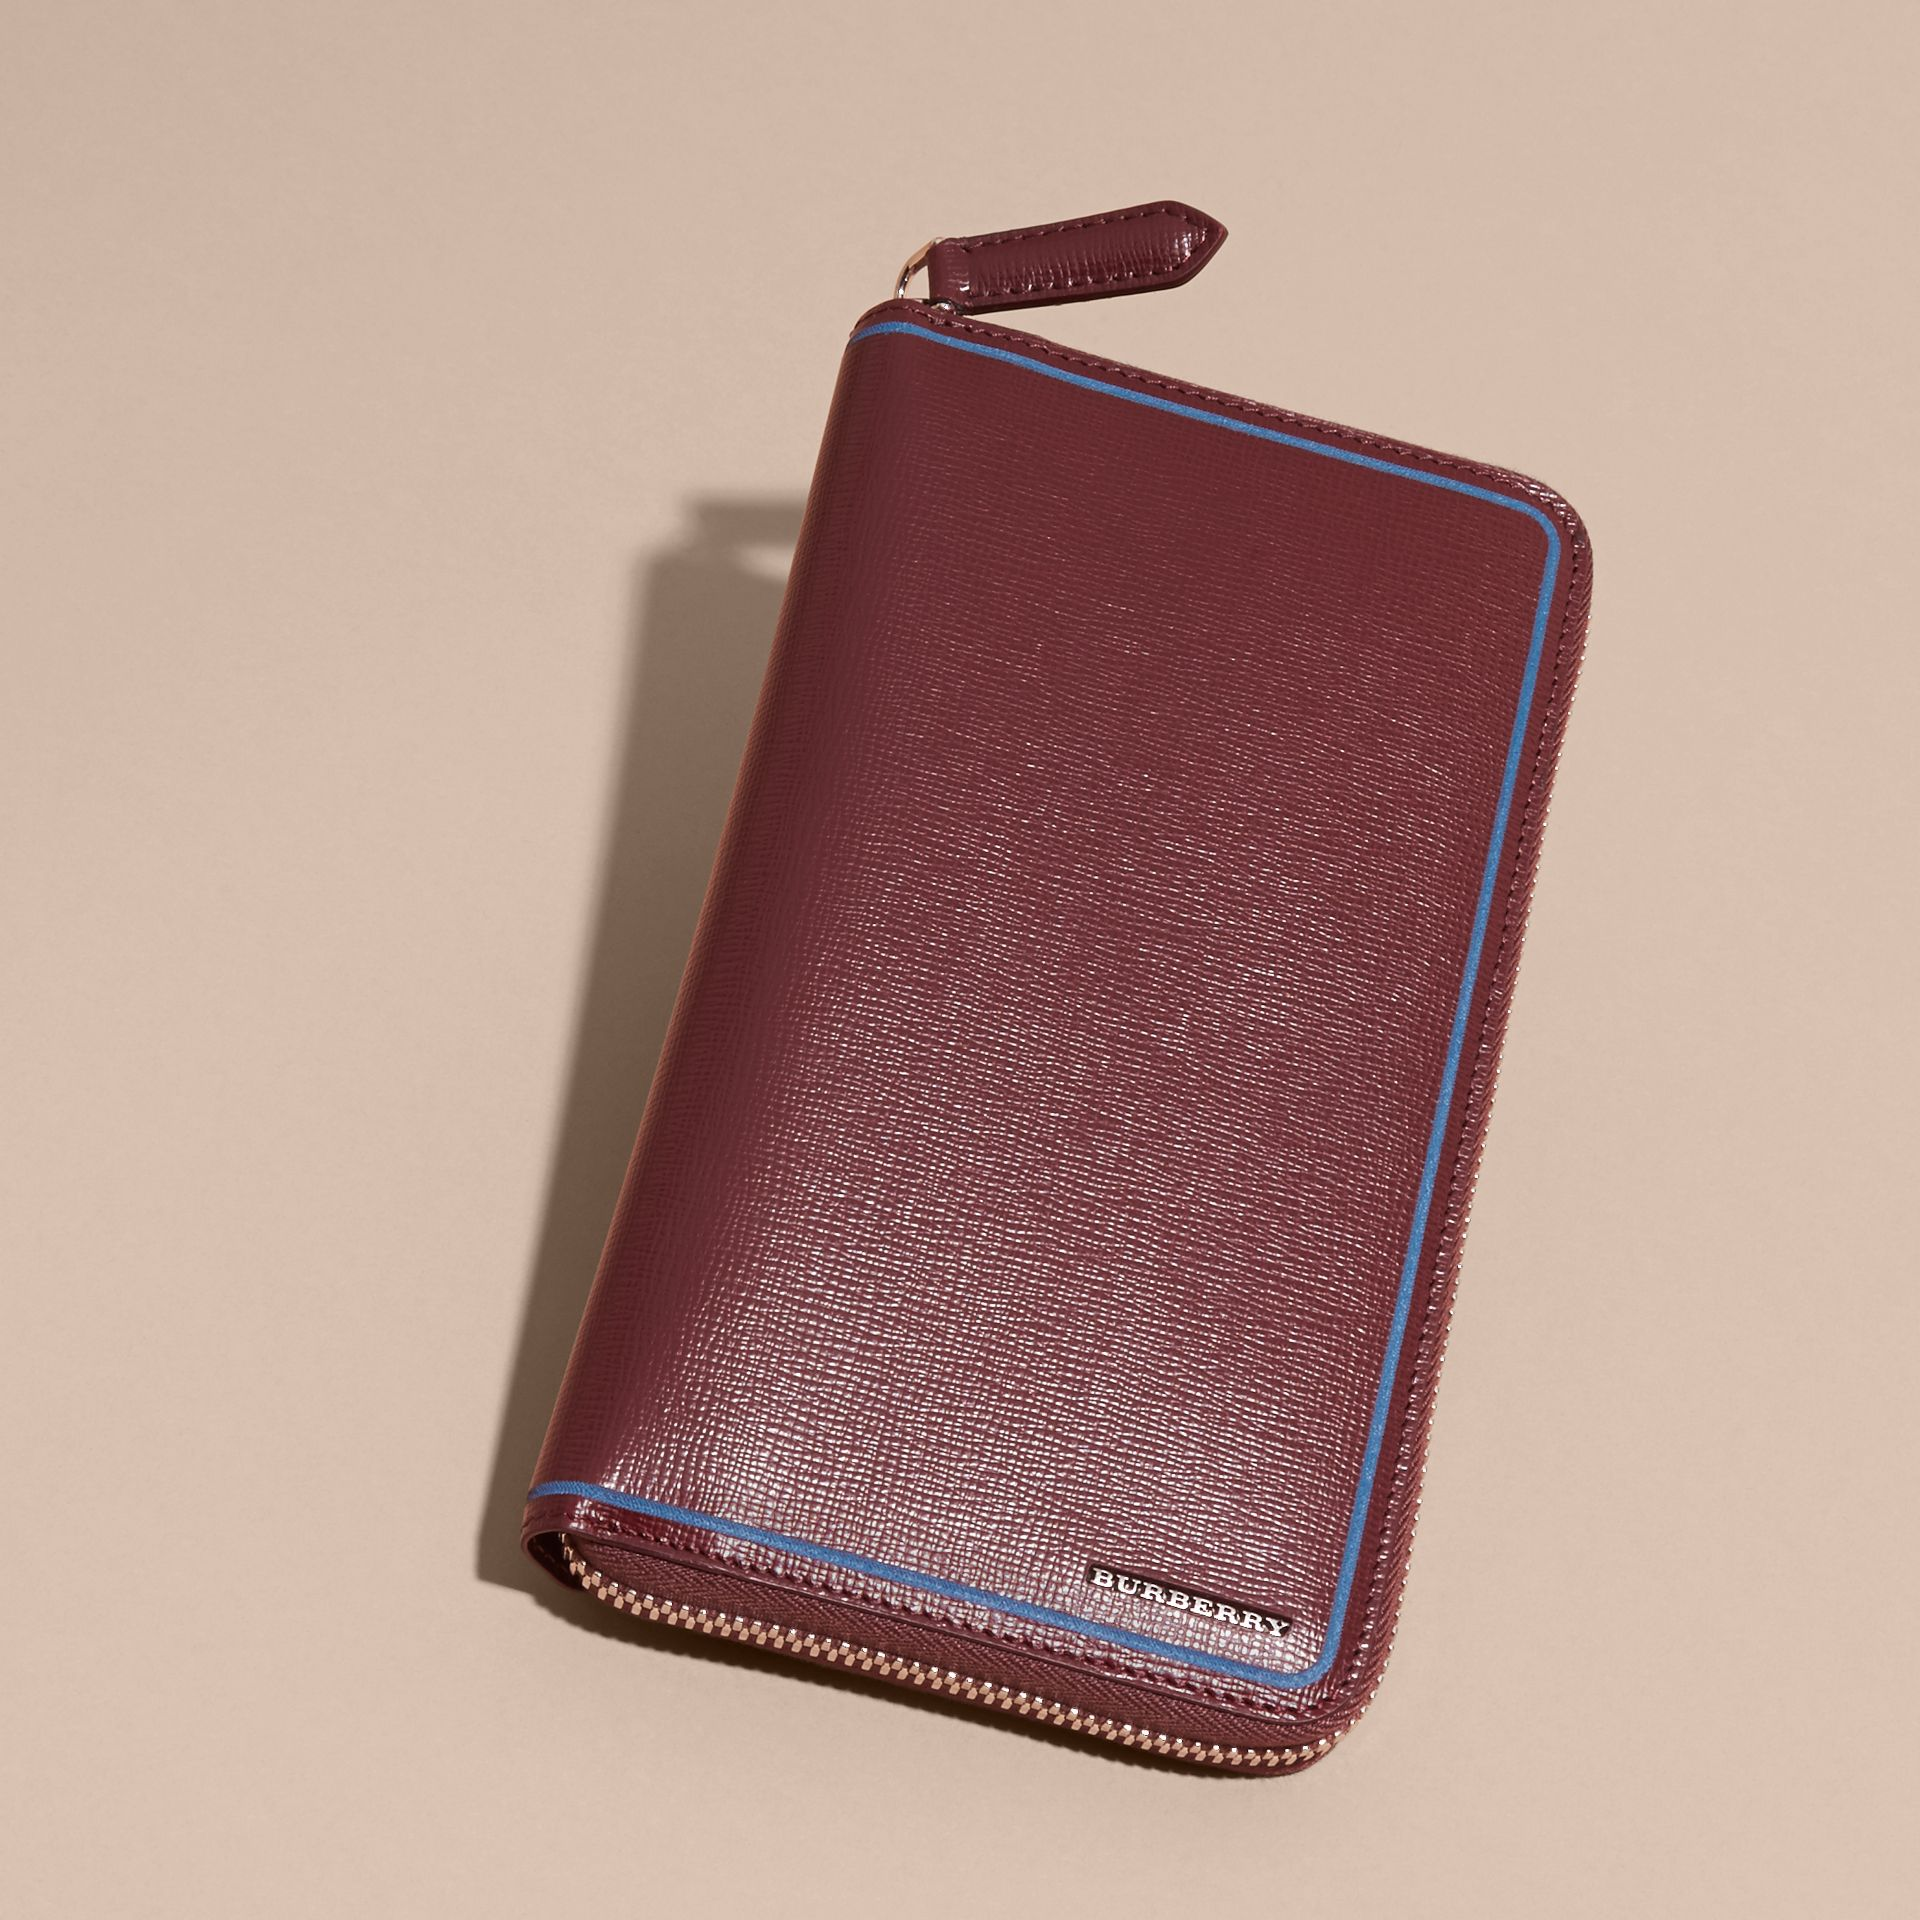 Burgundy red Border Detail London Leather Ziparound Wallet Burgundy Red - gallery image 5